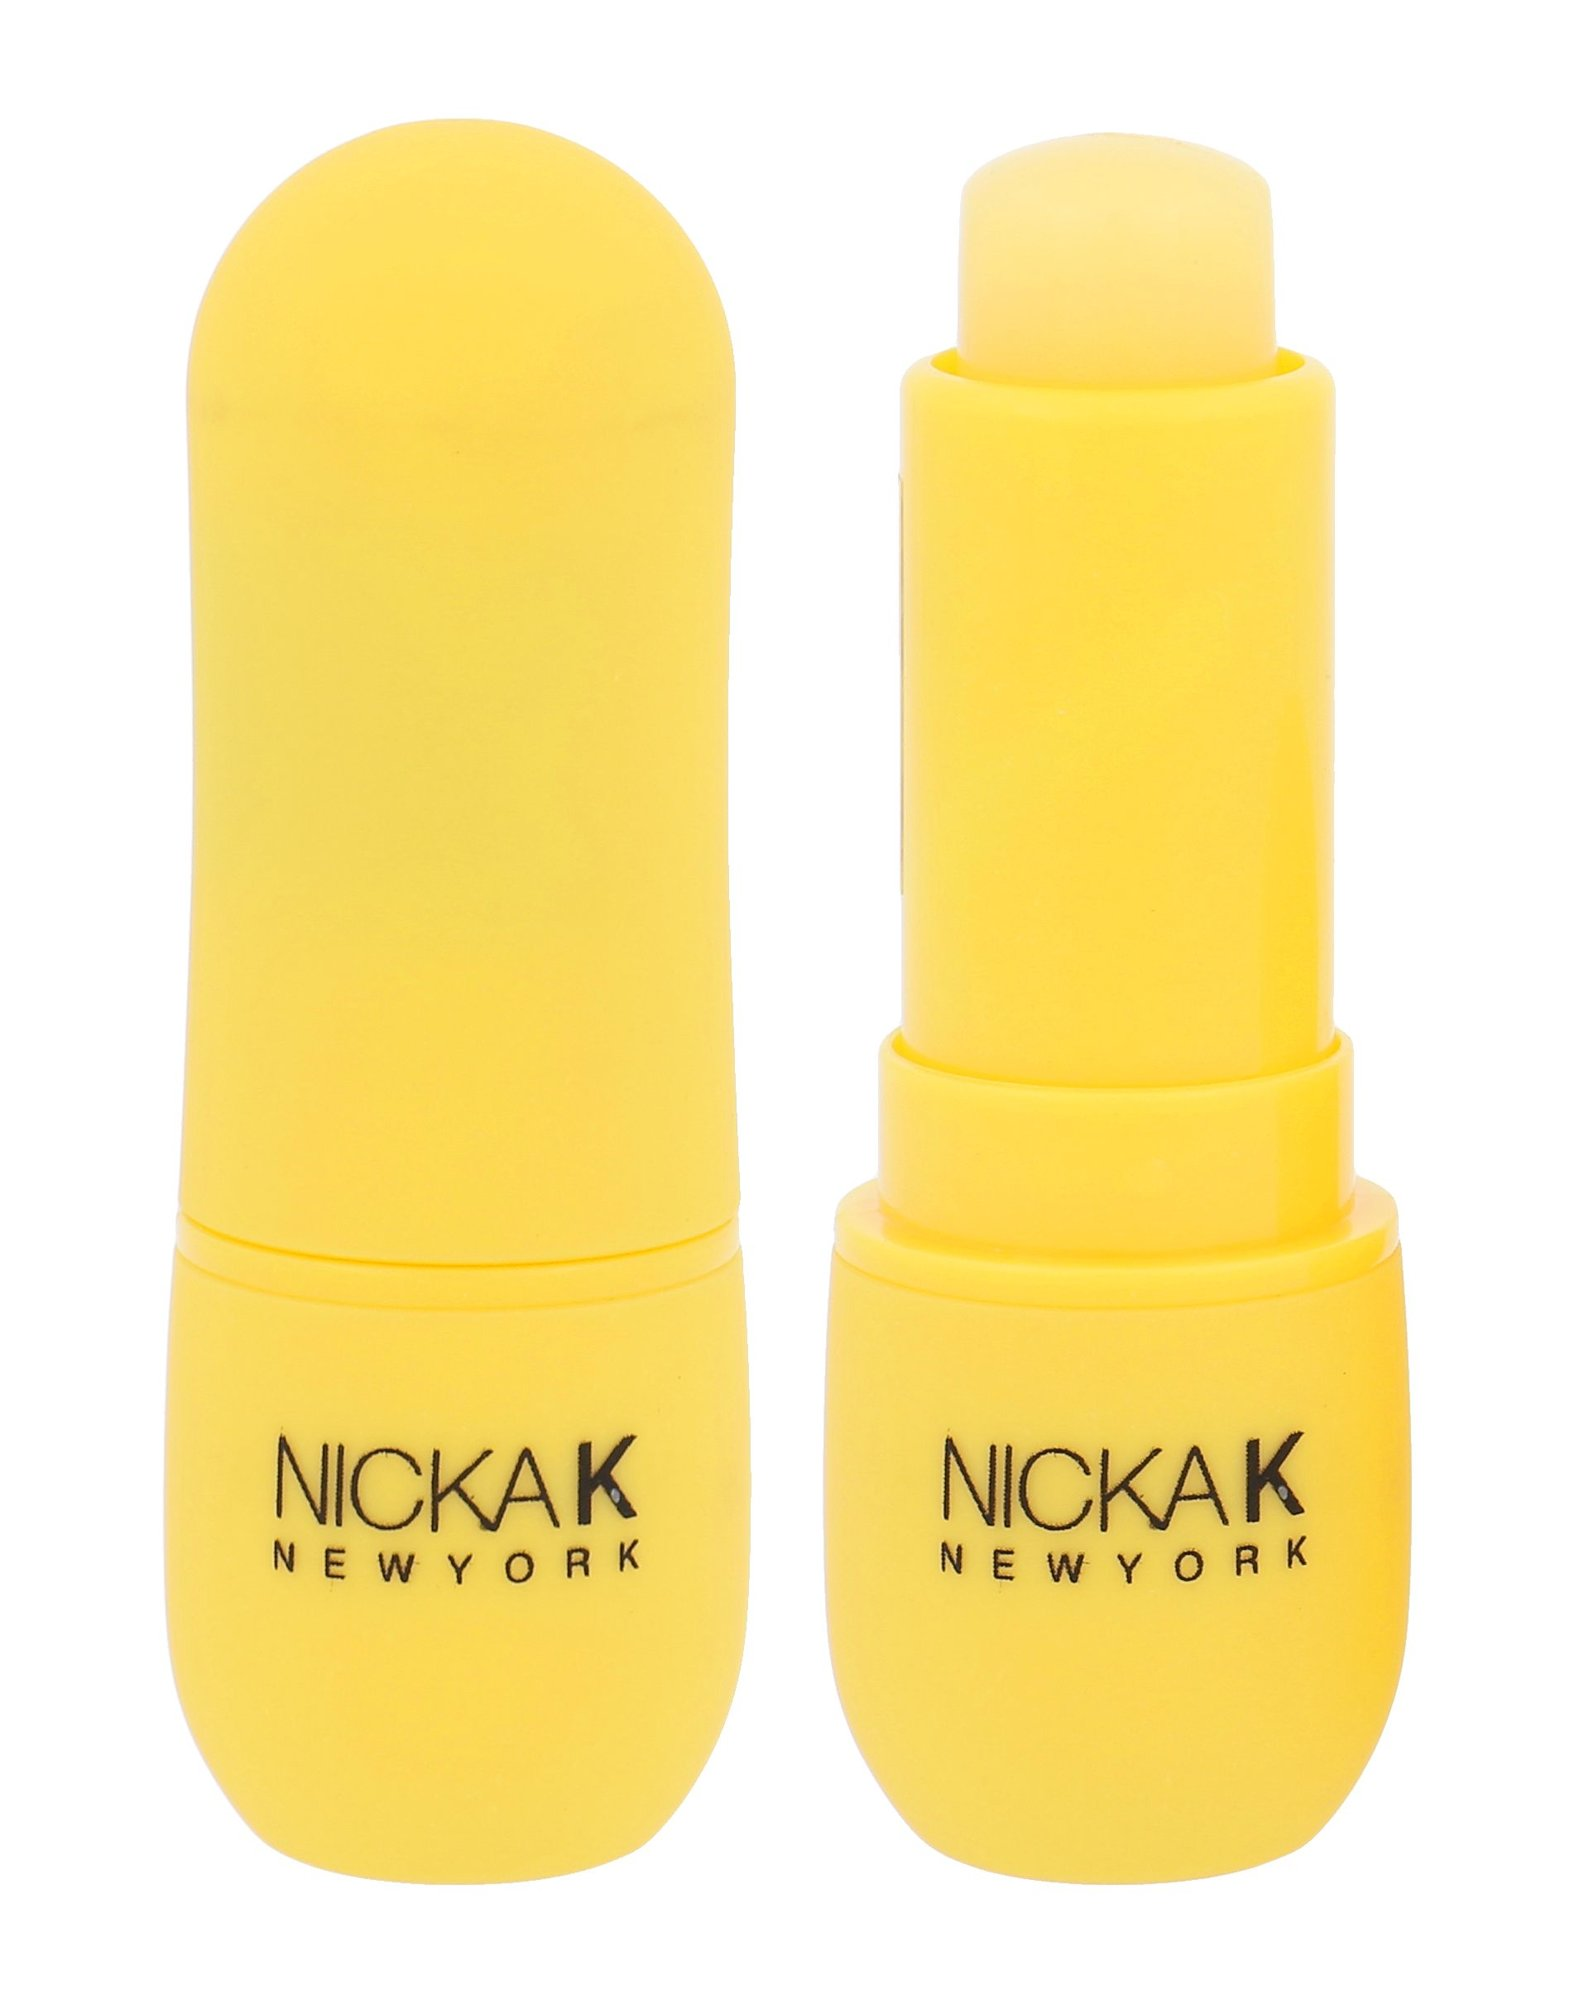 Nicka K New York Hydro Care Lip Balm Cosmetic 4,2g Lemon